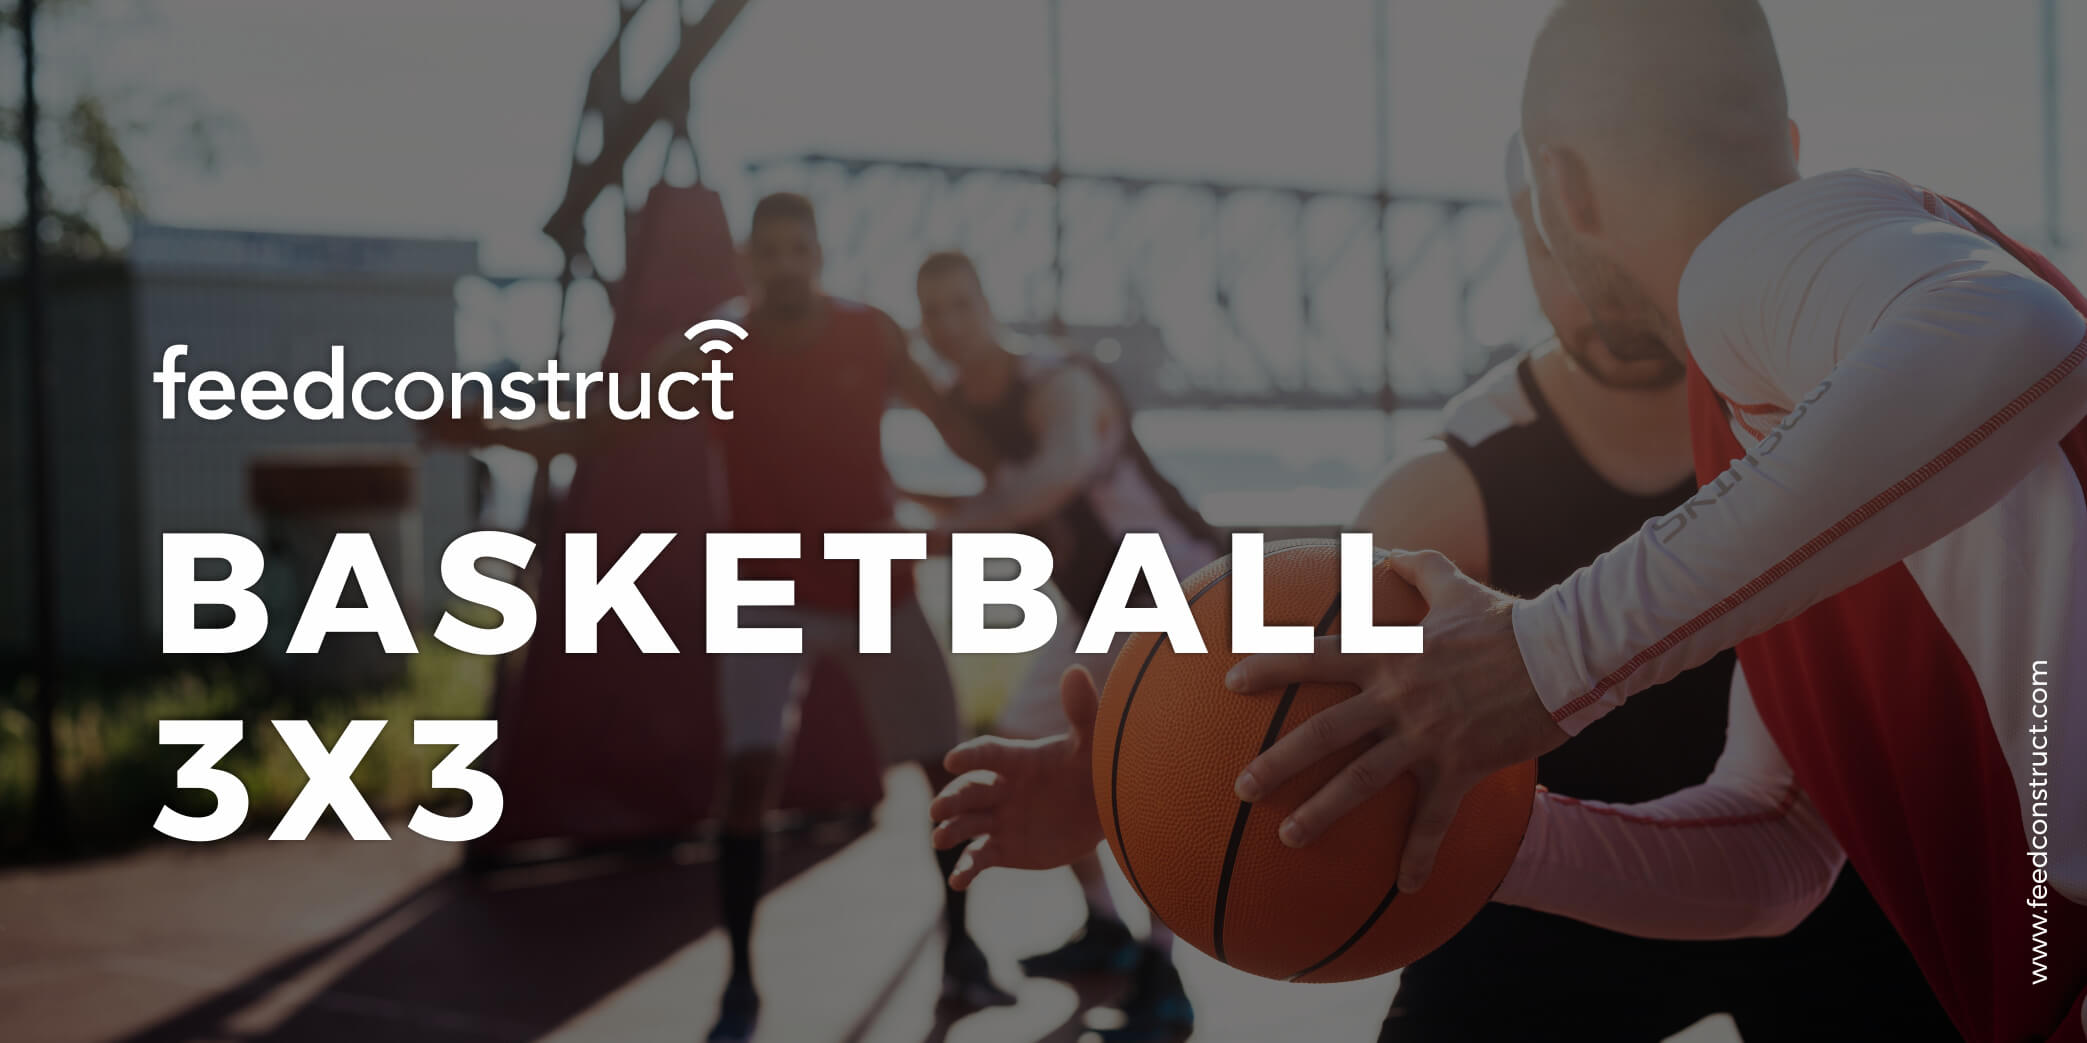 FeedConstruct adds data coverage for 3x3 Basketball